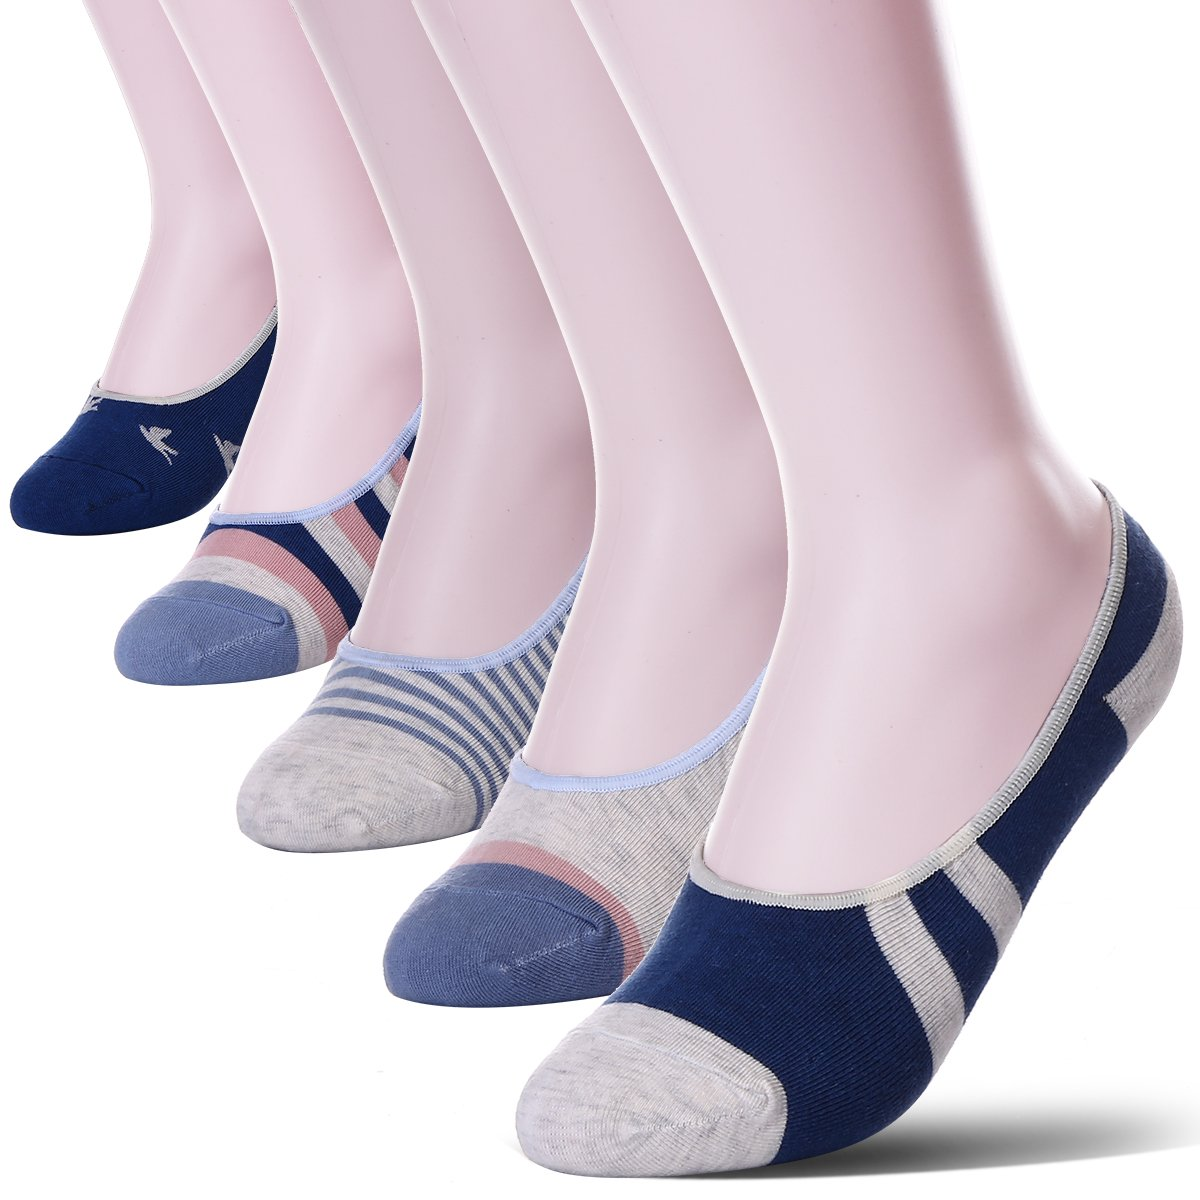 Womens 5 Pack Thin Casual No Show Socks Non Slip Flat Boat Line Low Cut